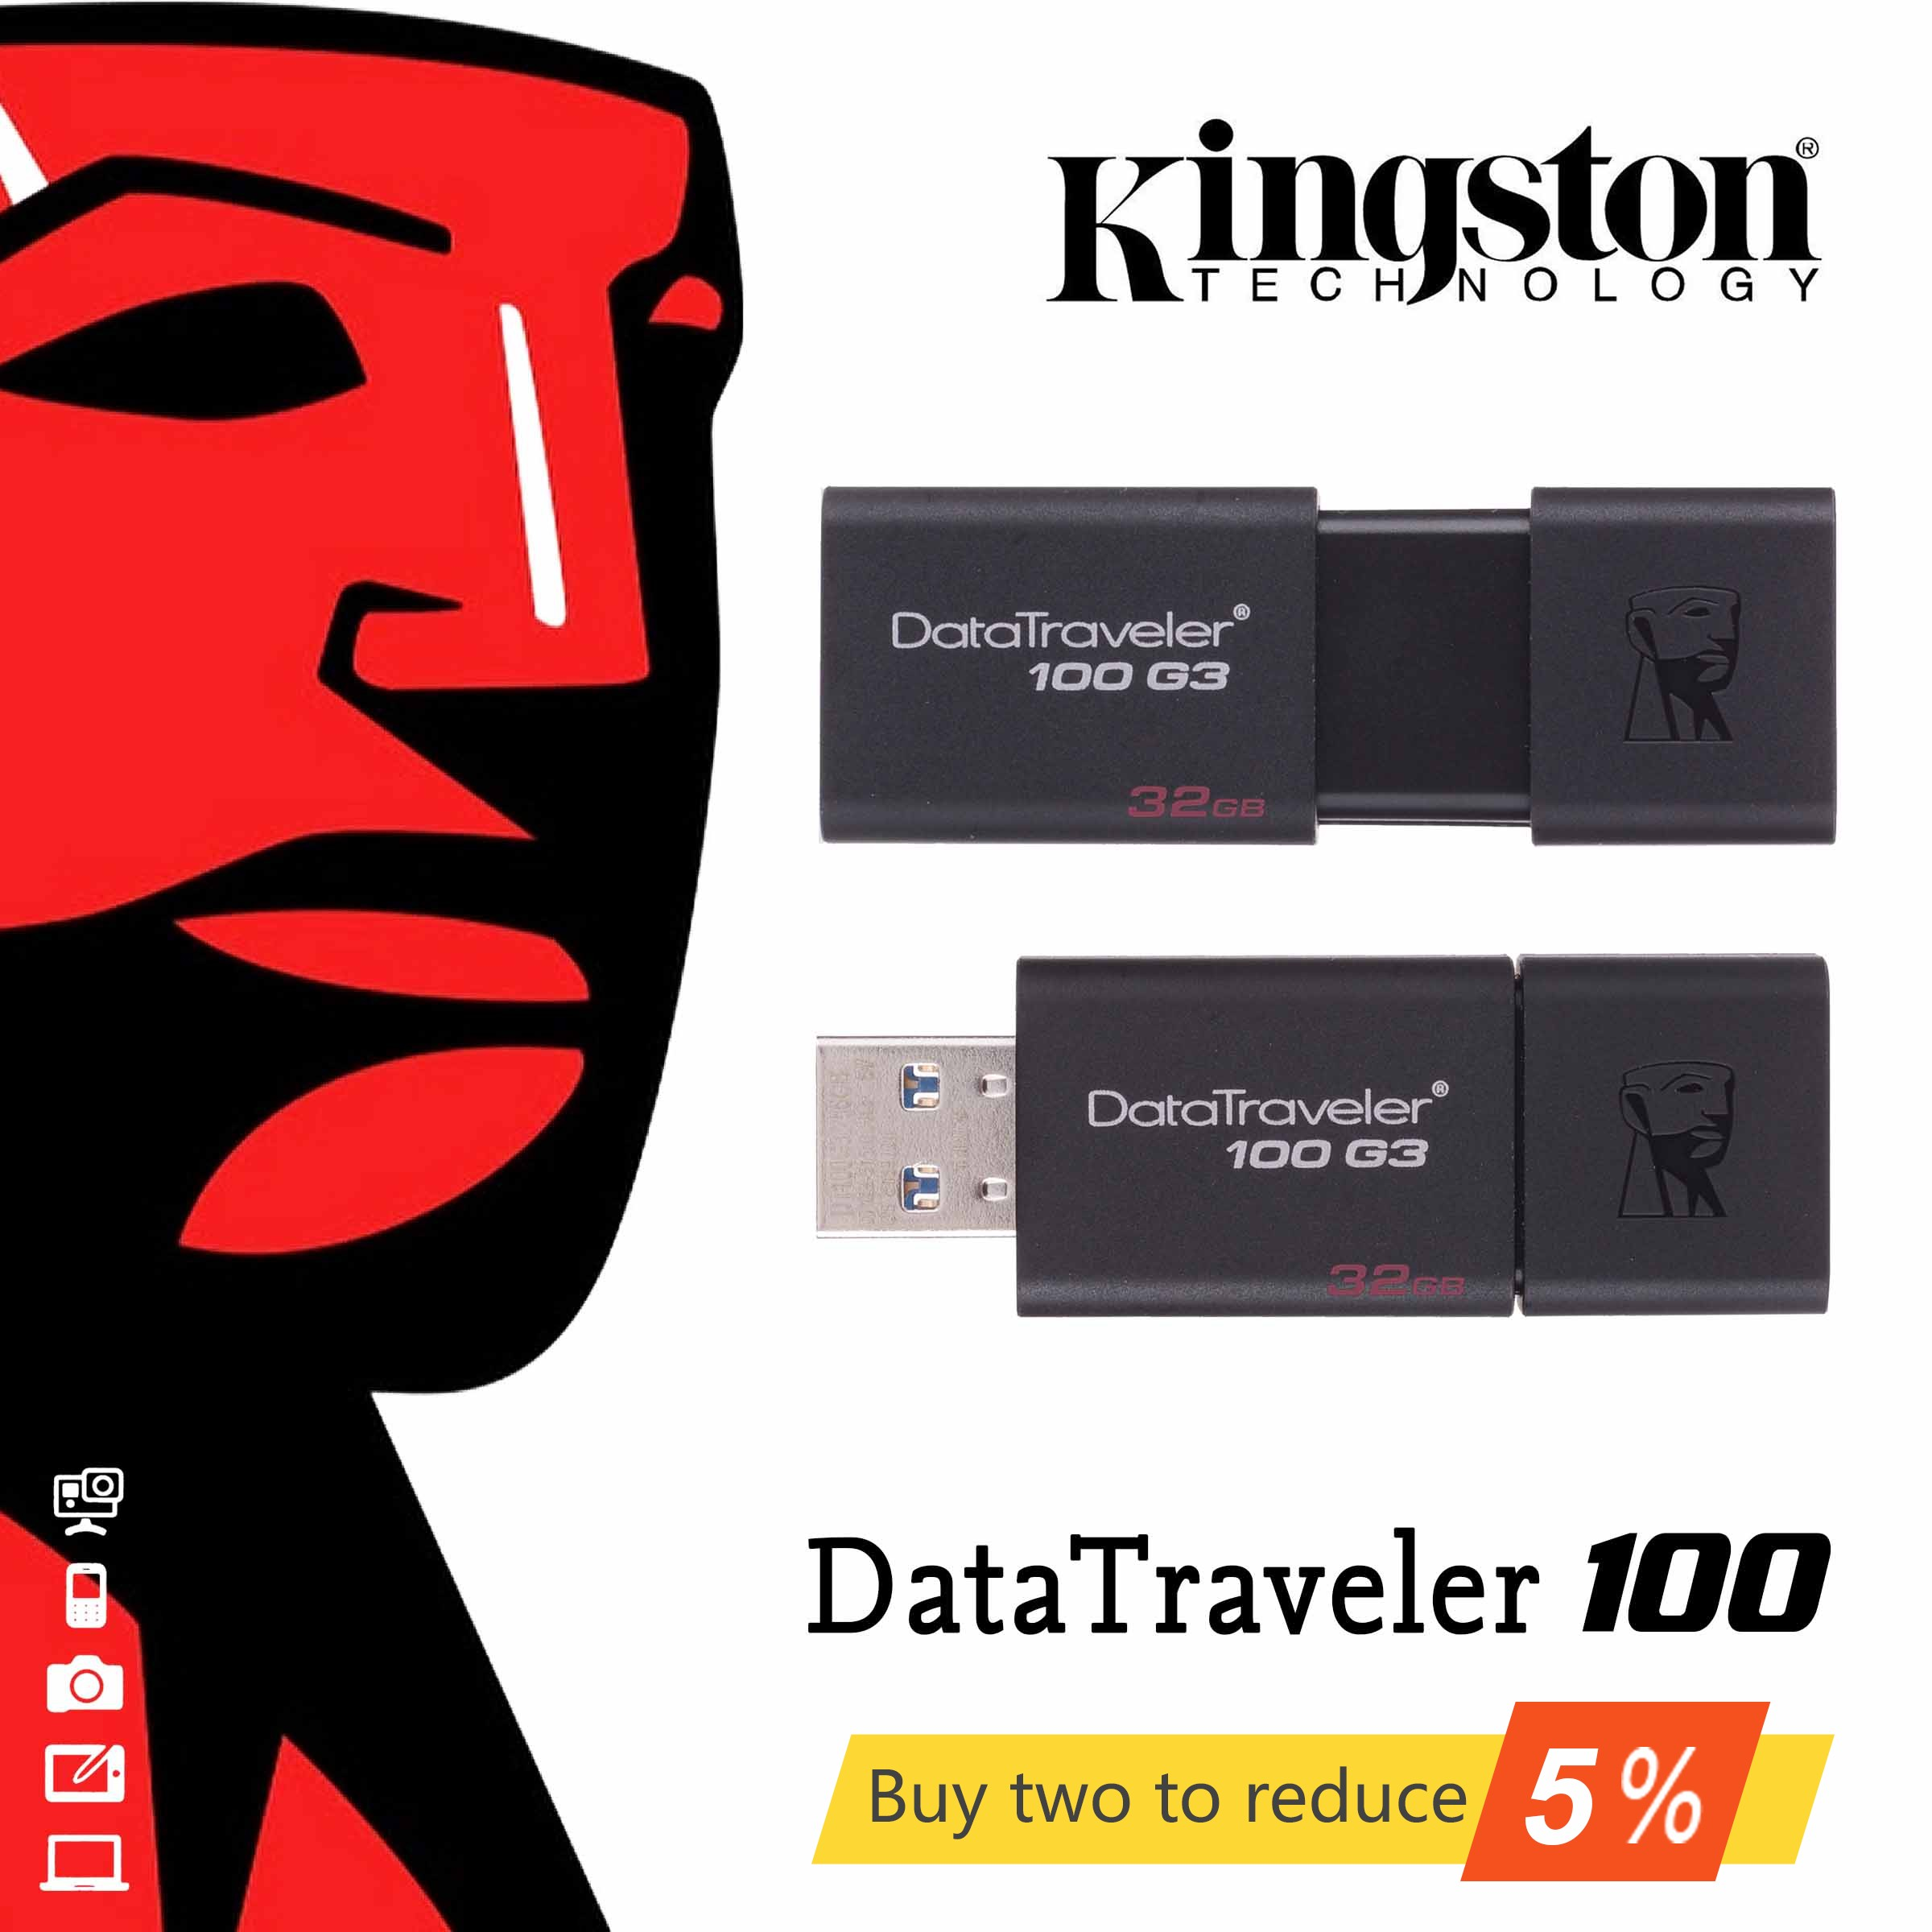 Lecteur Flash USB 3.0 vitesse d'origine Kingston lecteur Flash USB 16 GB 32 GB 64 GB 16 32 64 GB lecteur de clé USB clé USB DT100G3